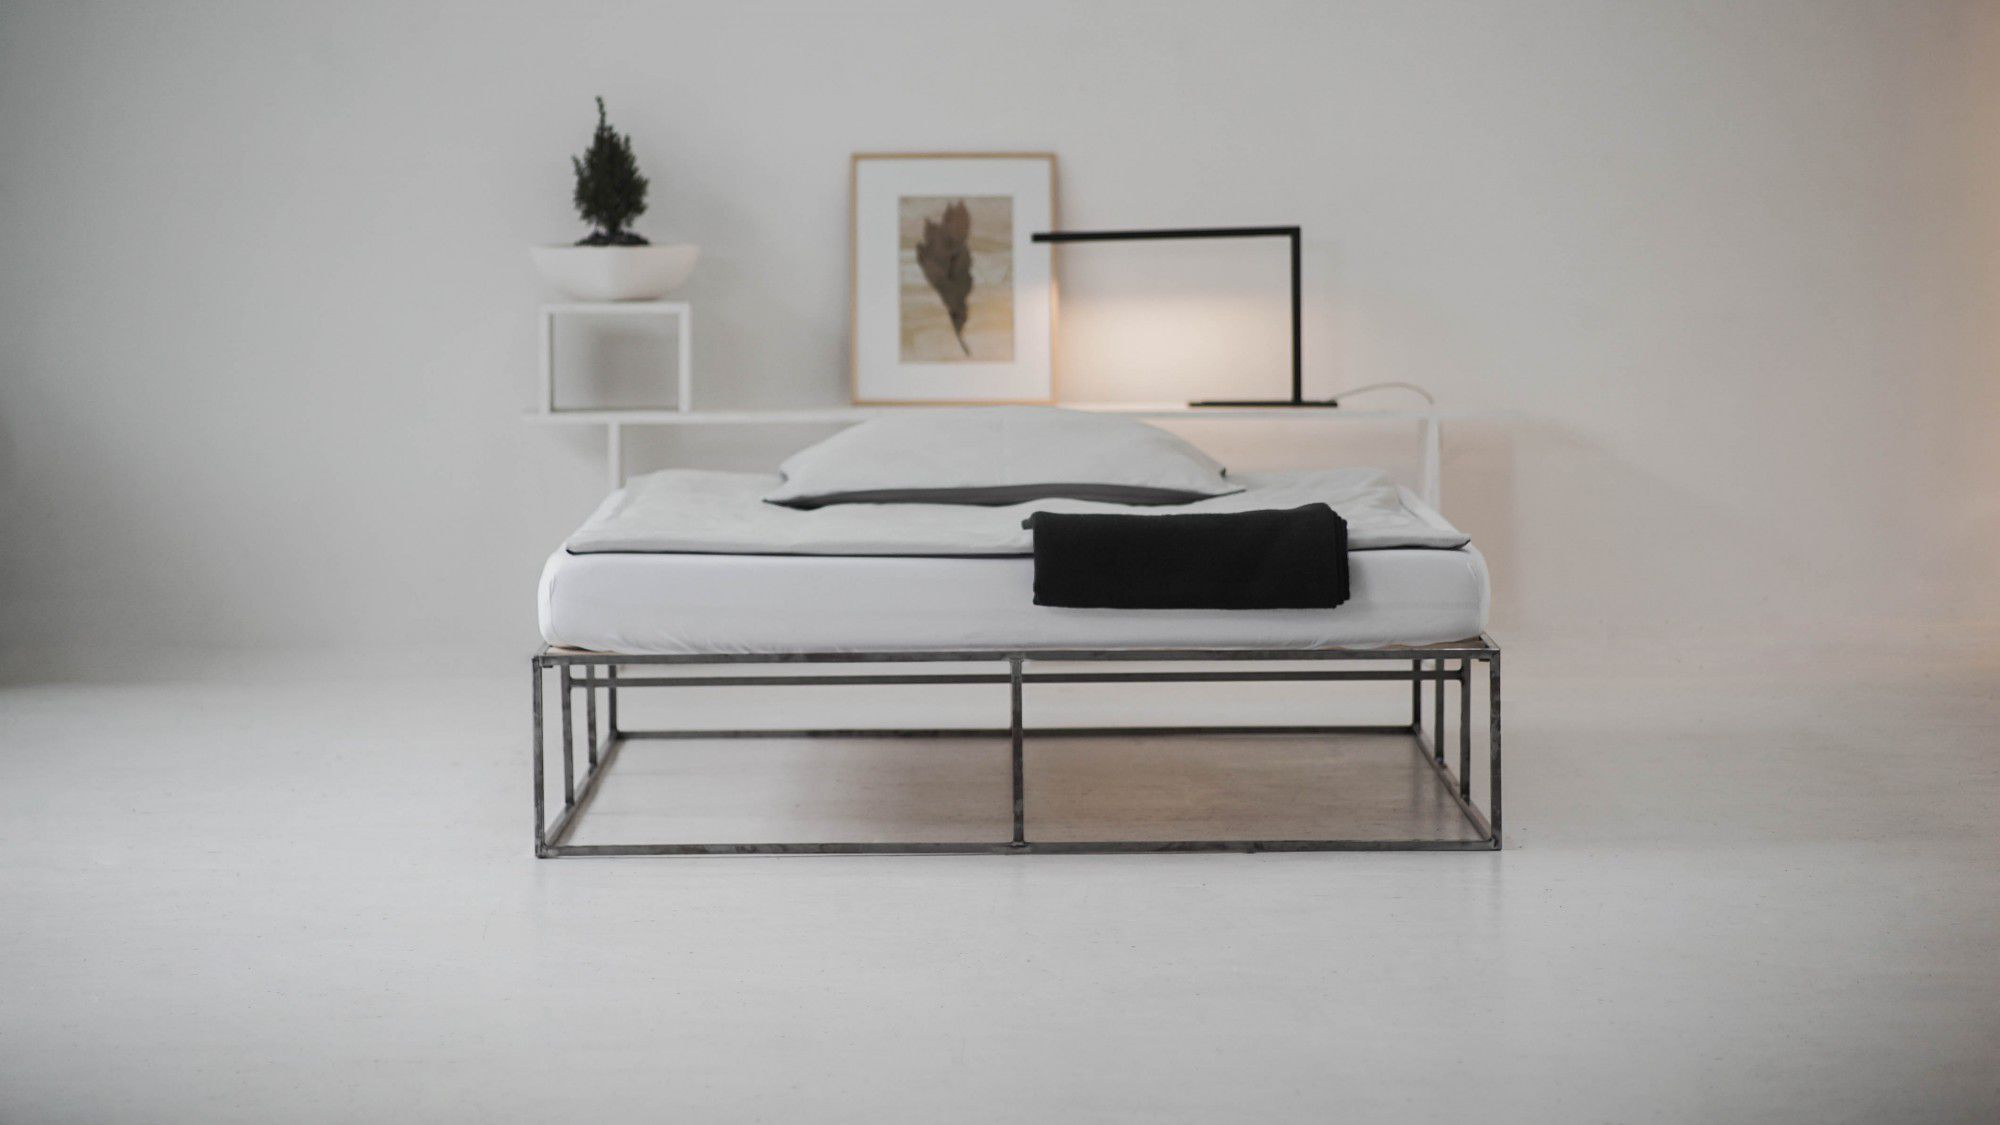 1 bett standard modern aus stah archiexpo design berlin stahlbett steel bed metal bed. Black Bedroom Furniture Sets. Home Design Ideas